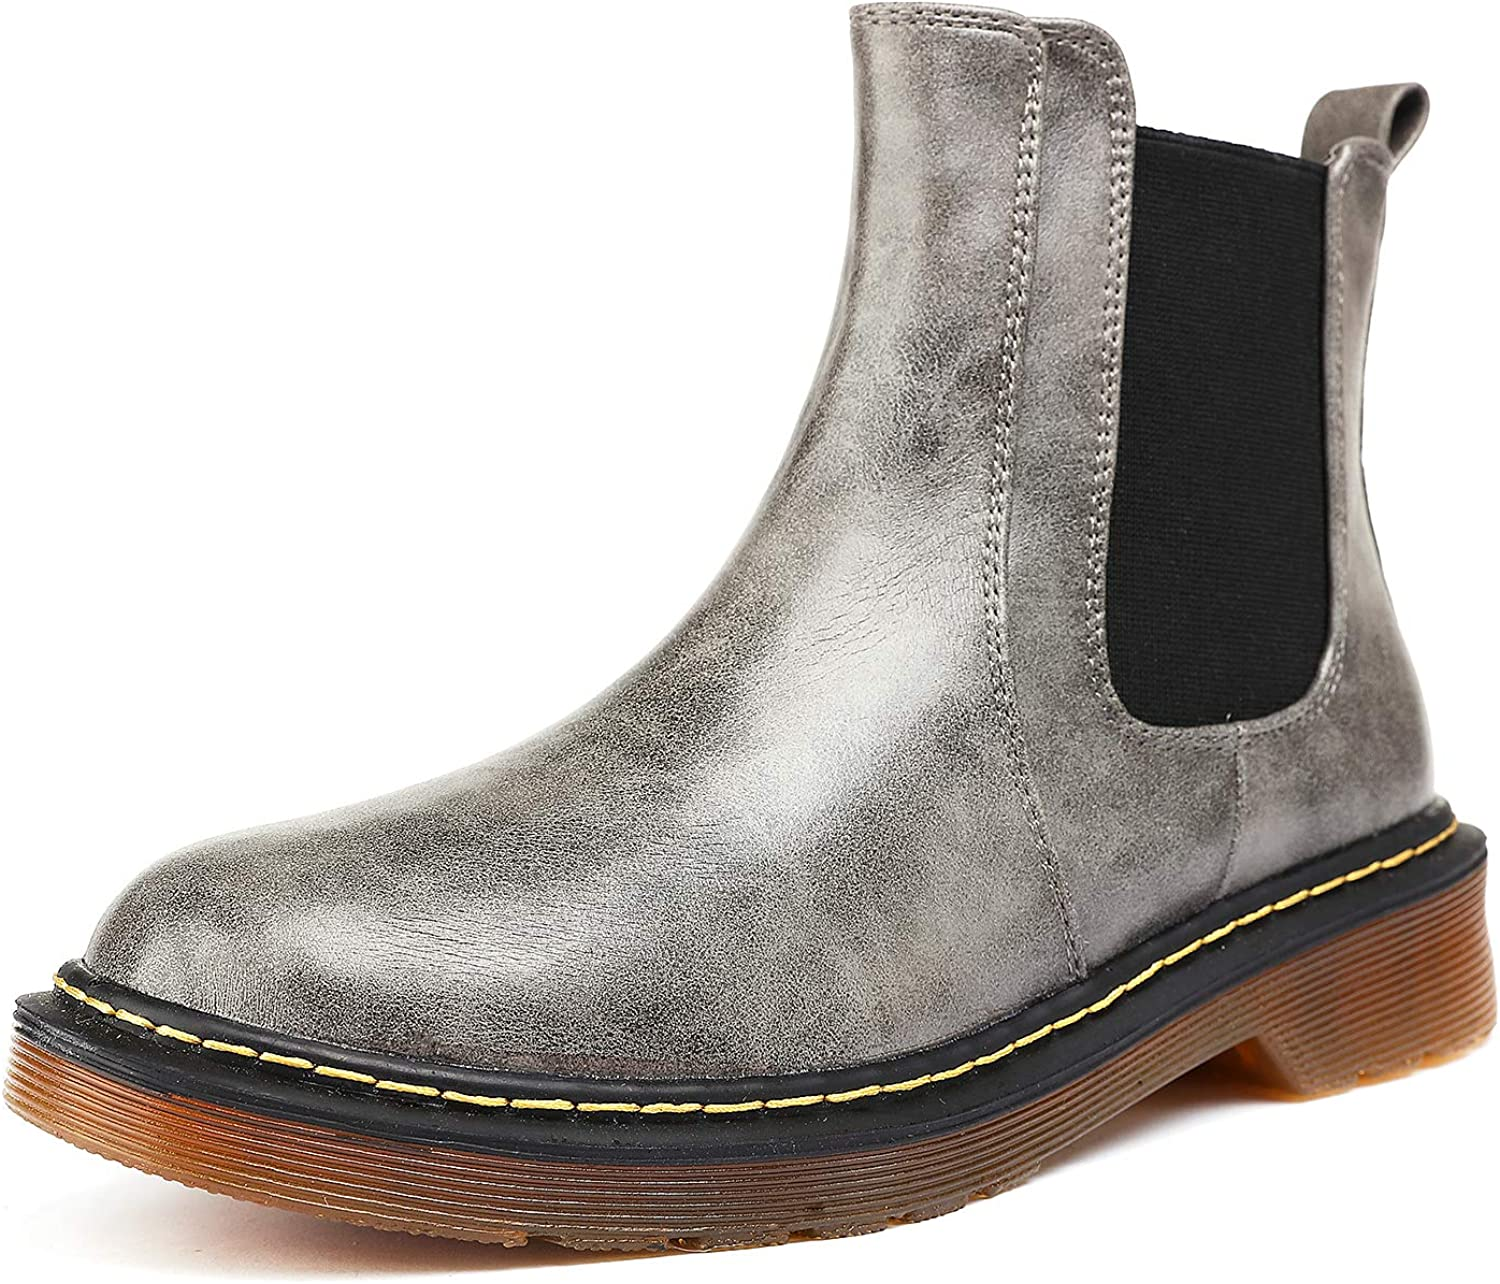 Odema Womens Chelsea Boots PU Leather Low Heel Elastic Slip On Ankle Bootie Cotton/Fur Lining